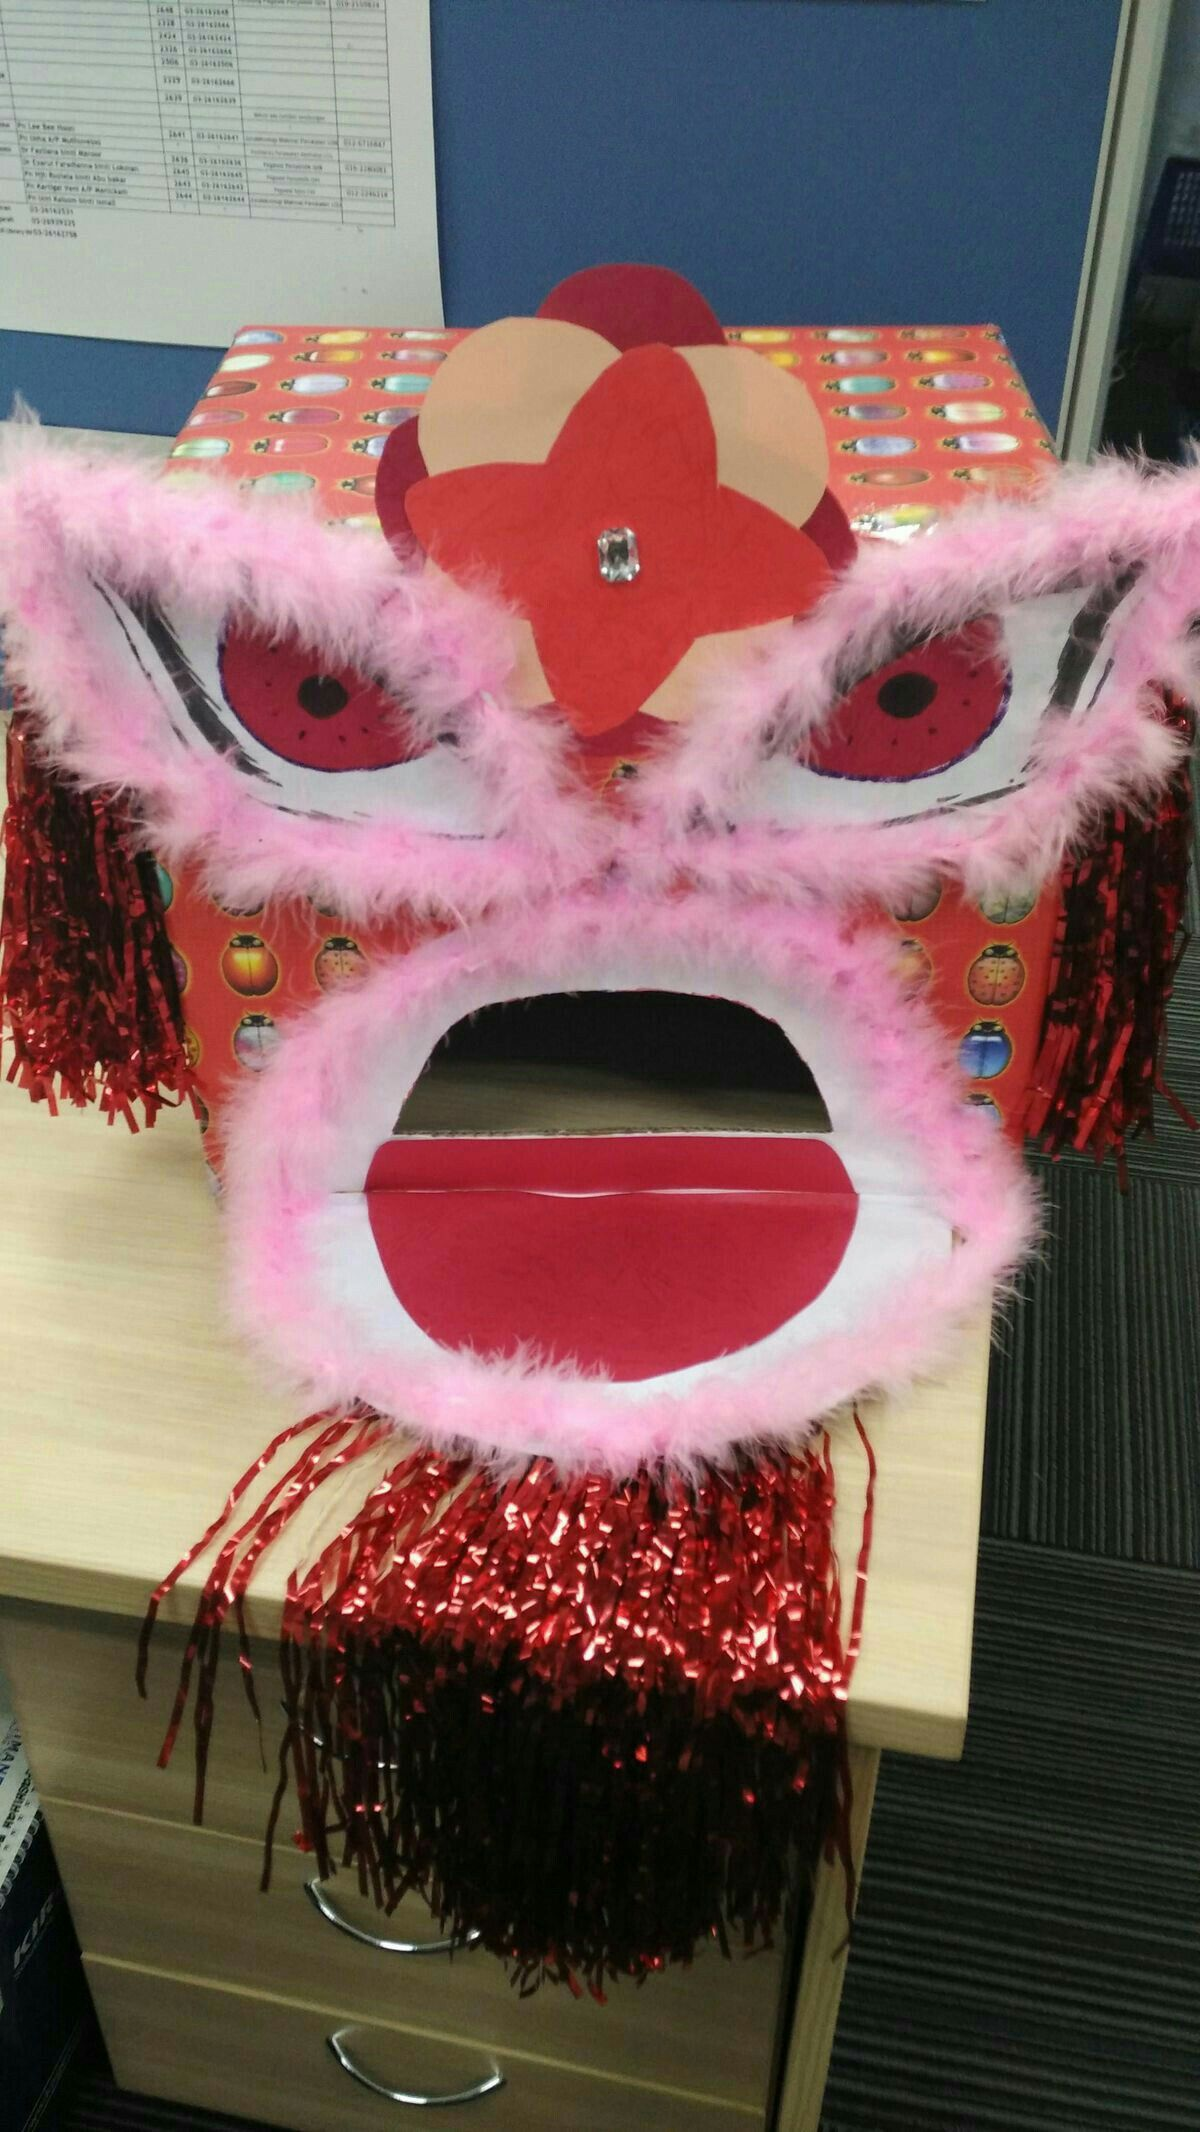 Pin By J Peters On Room 1 May And June Chinese New Year Crafts For Kids Dance Crafts Lion Craft